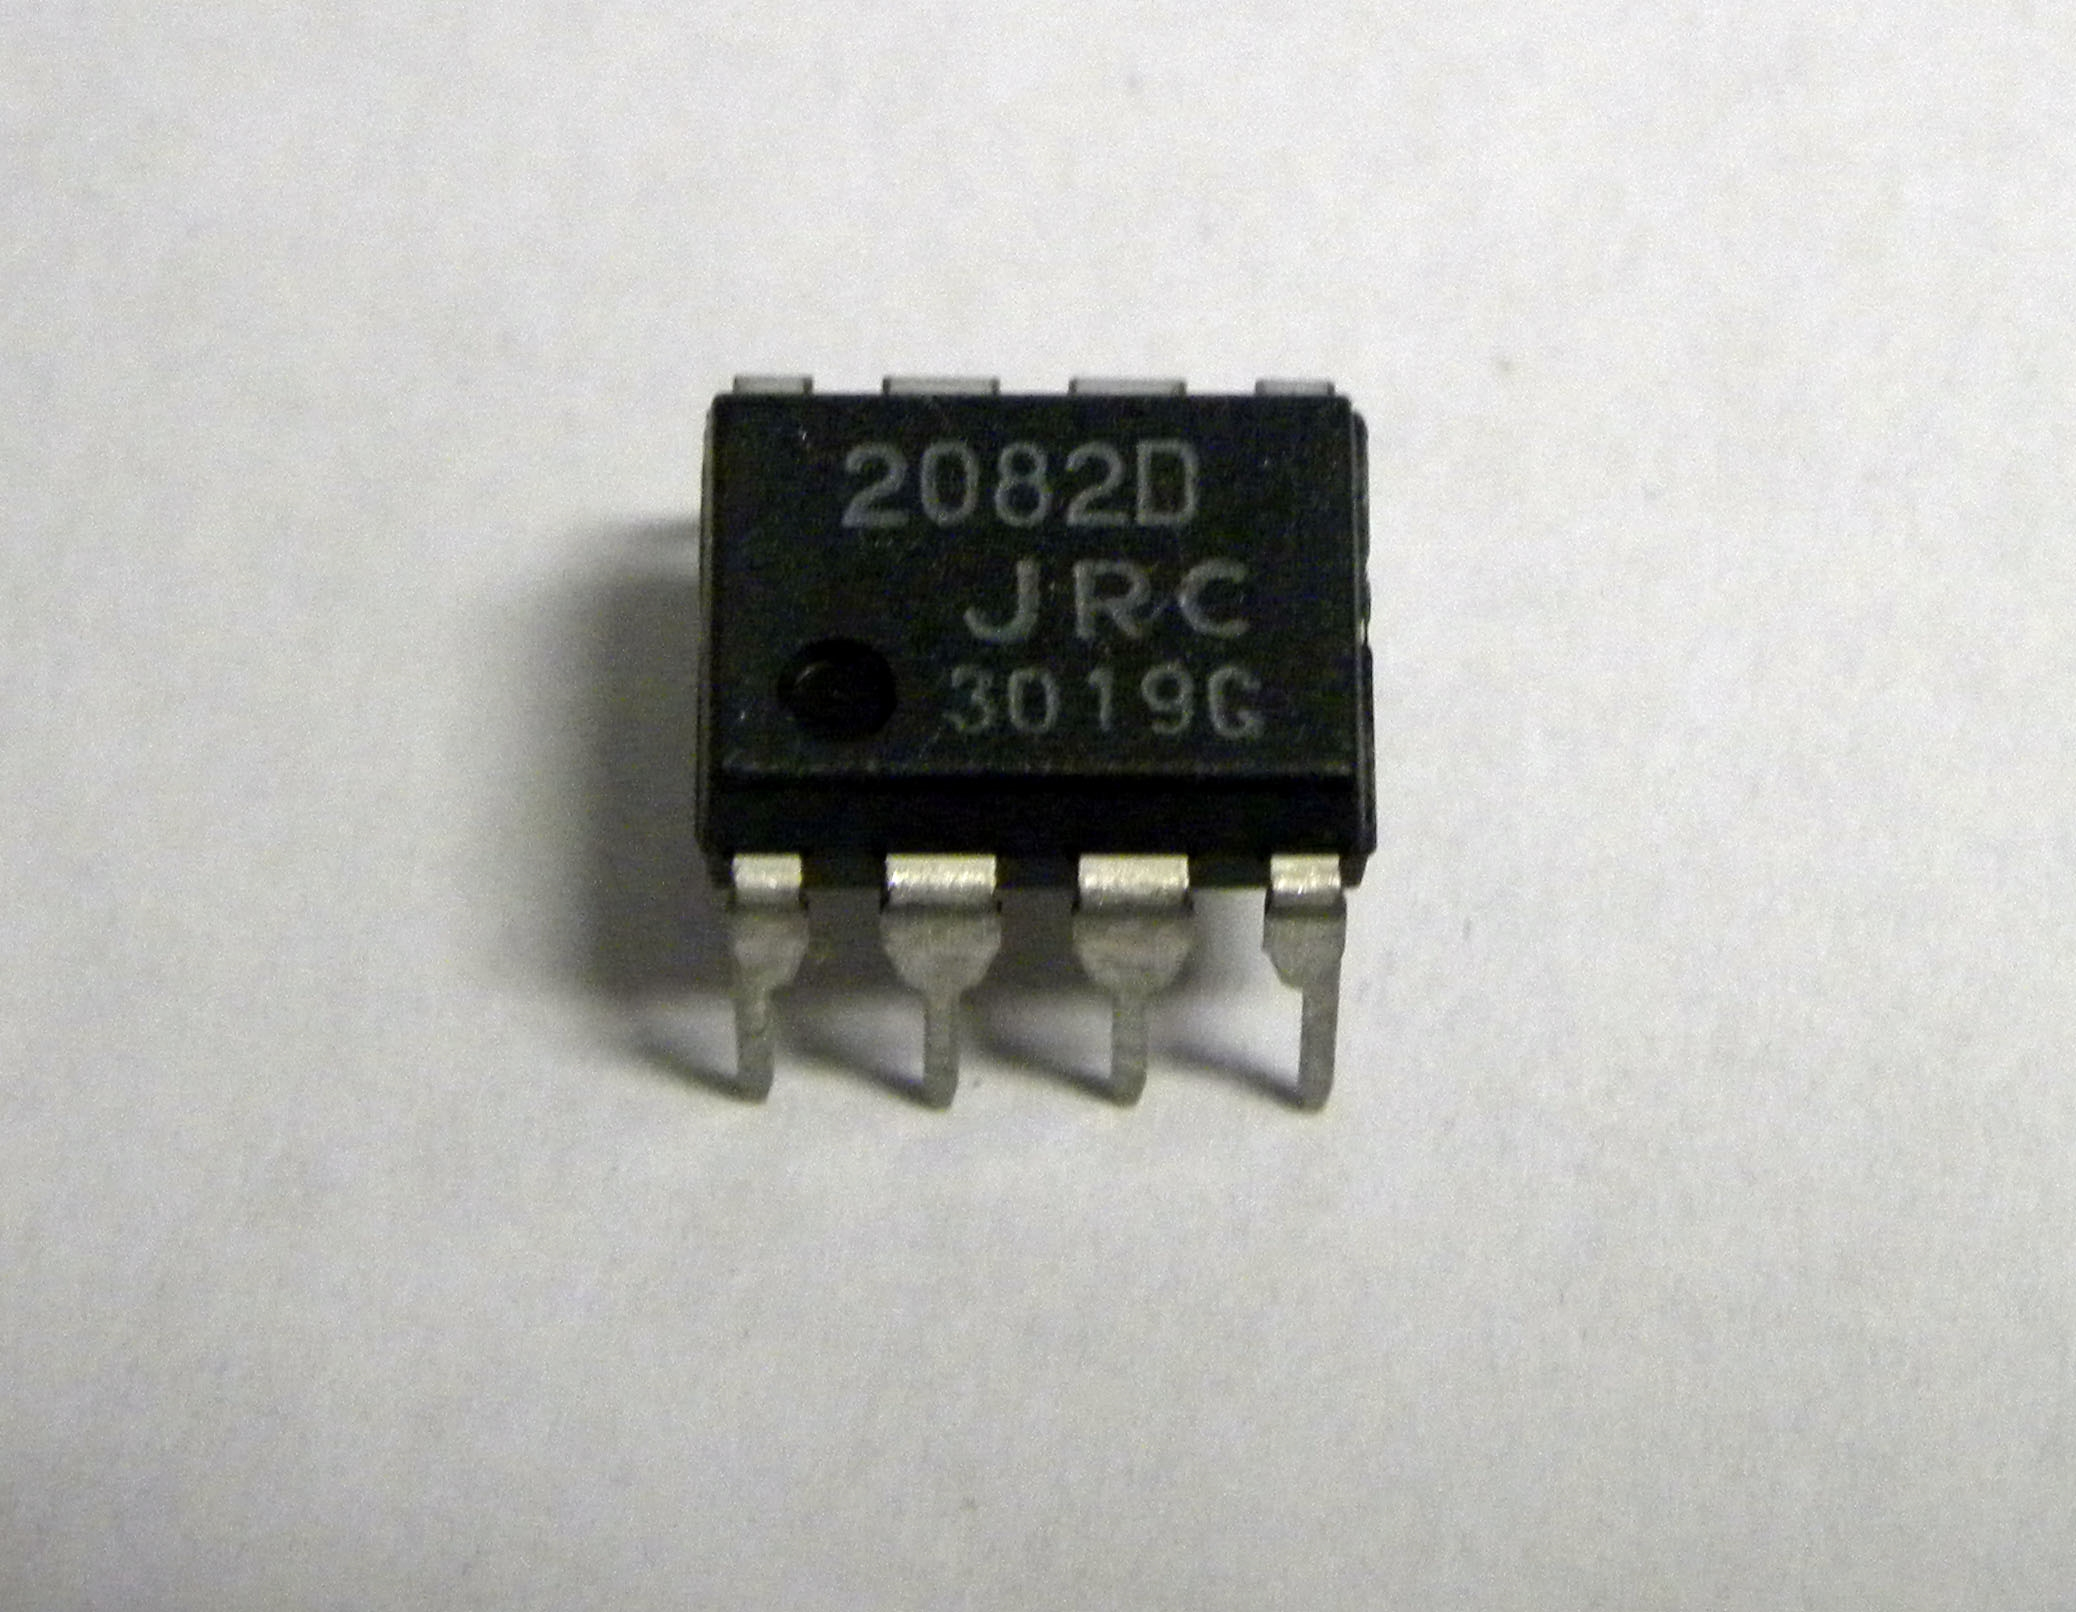 vestax-ic-chip-pcv-175-pcv-180-pmc-007-pmc-07isp-pmc-07pro-pmc-170a-pmc-25